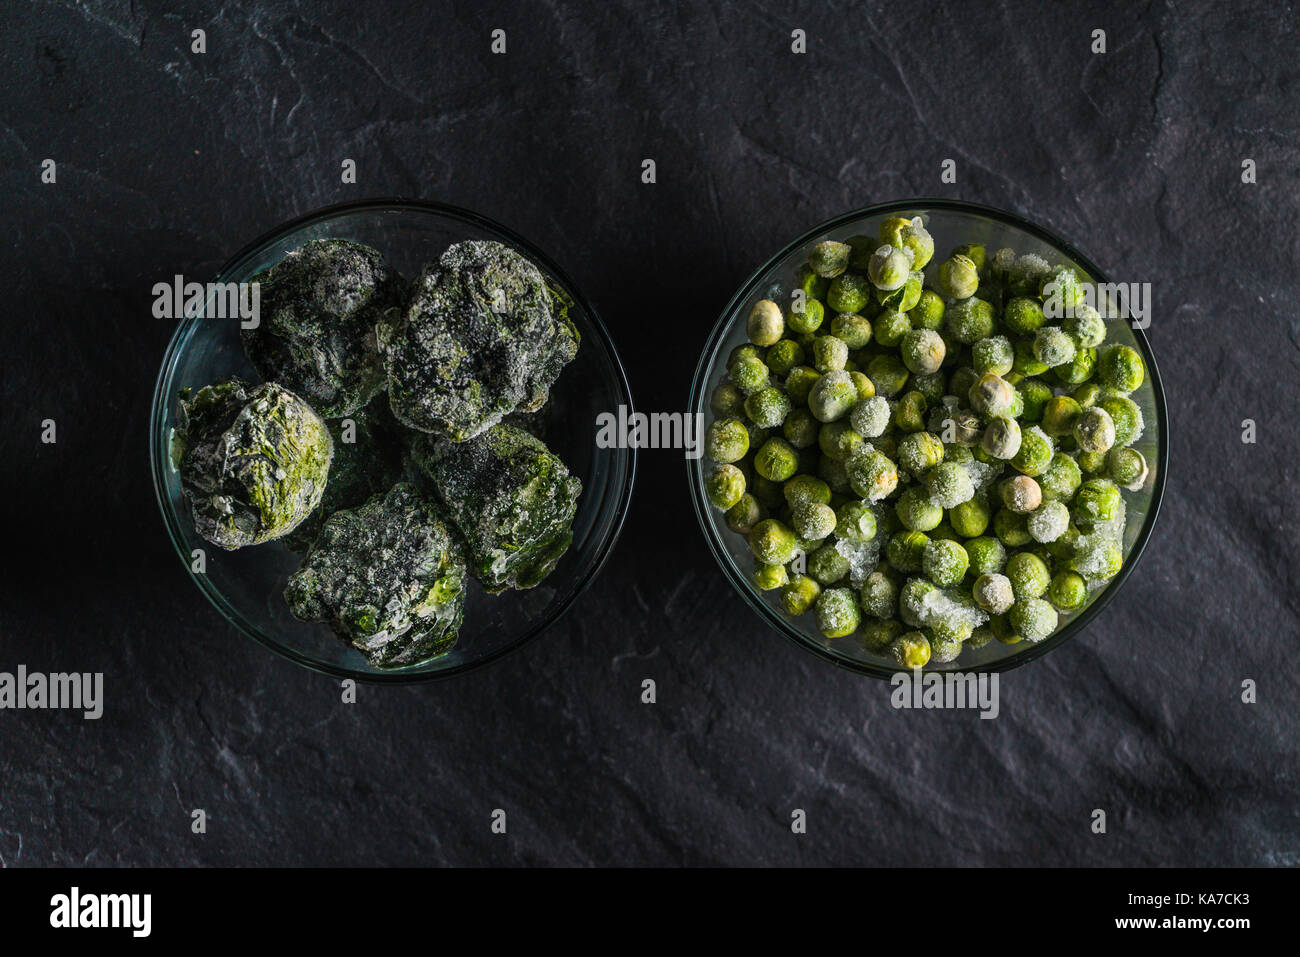 Healthy food frozen spinach and peas top view horizontal - Stock Image